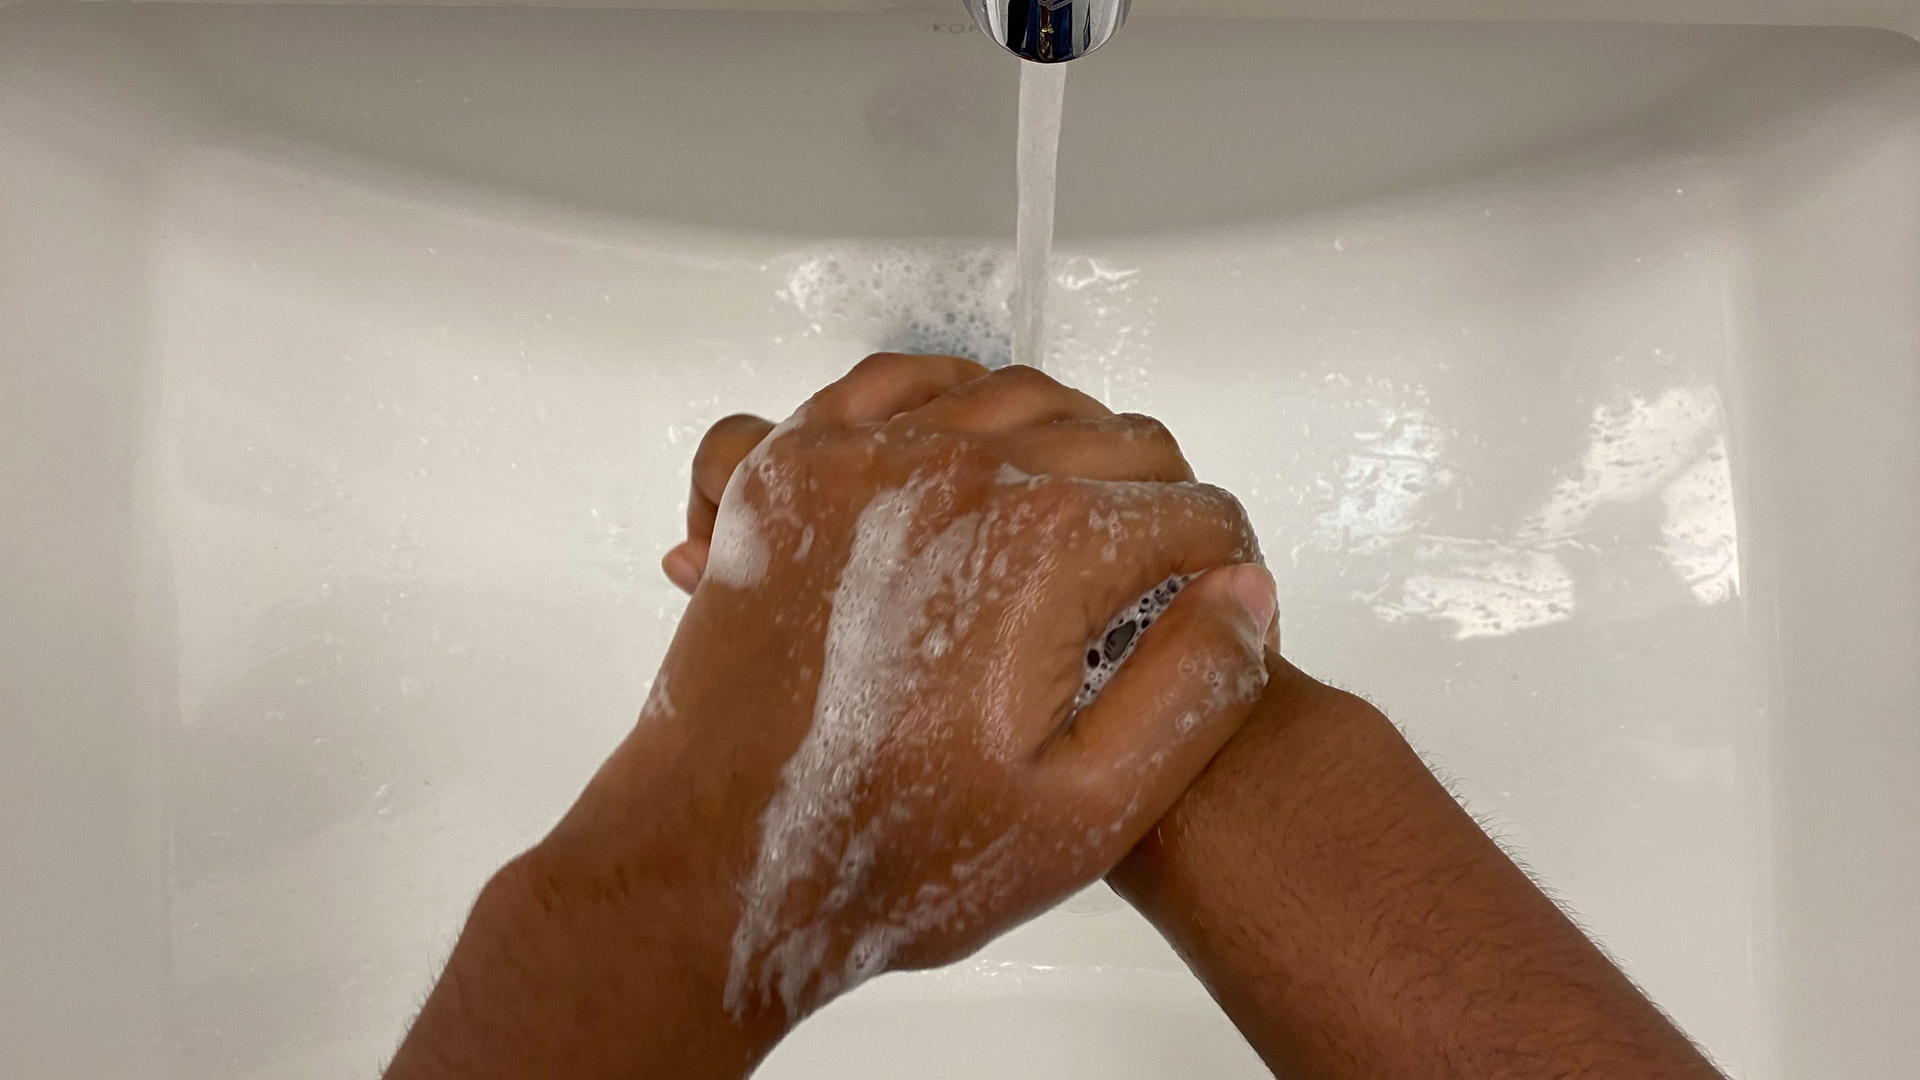 The CDC says the best way to prevent transmission of the novel coronavirus is by thoroughly washing your hands with soap and water (Scottie Andrew/CNN)